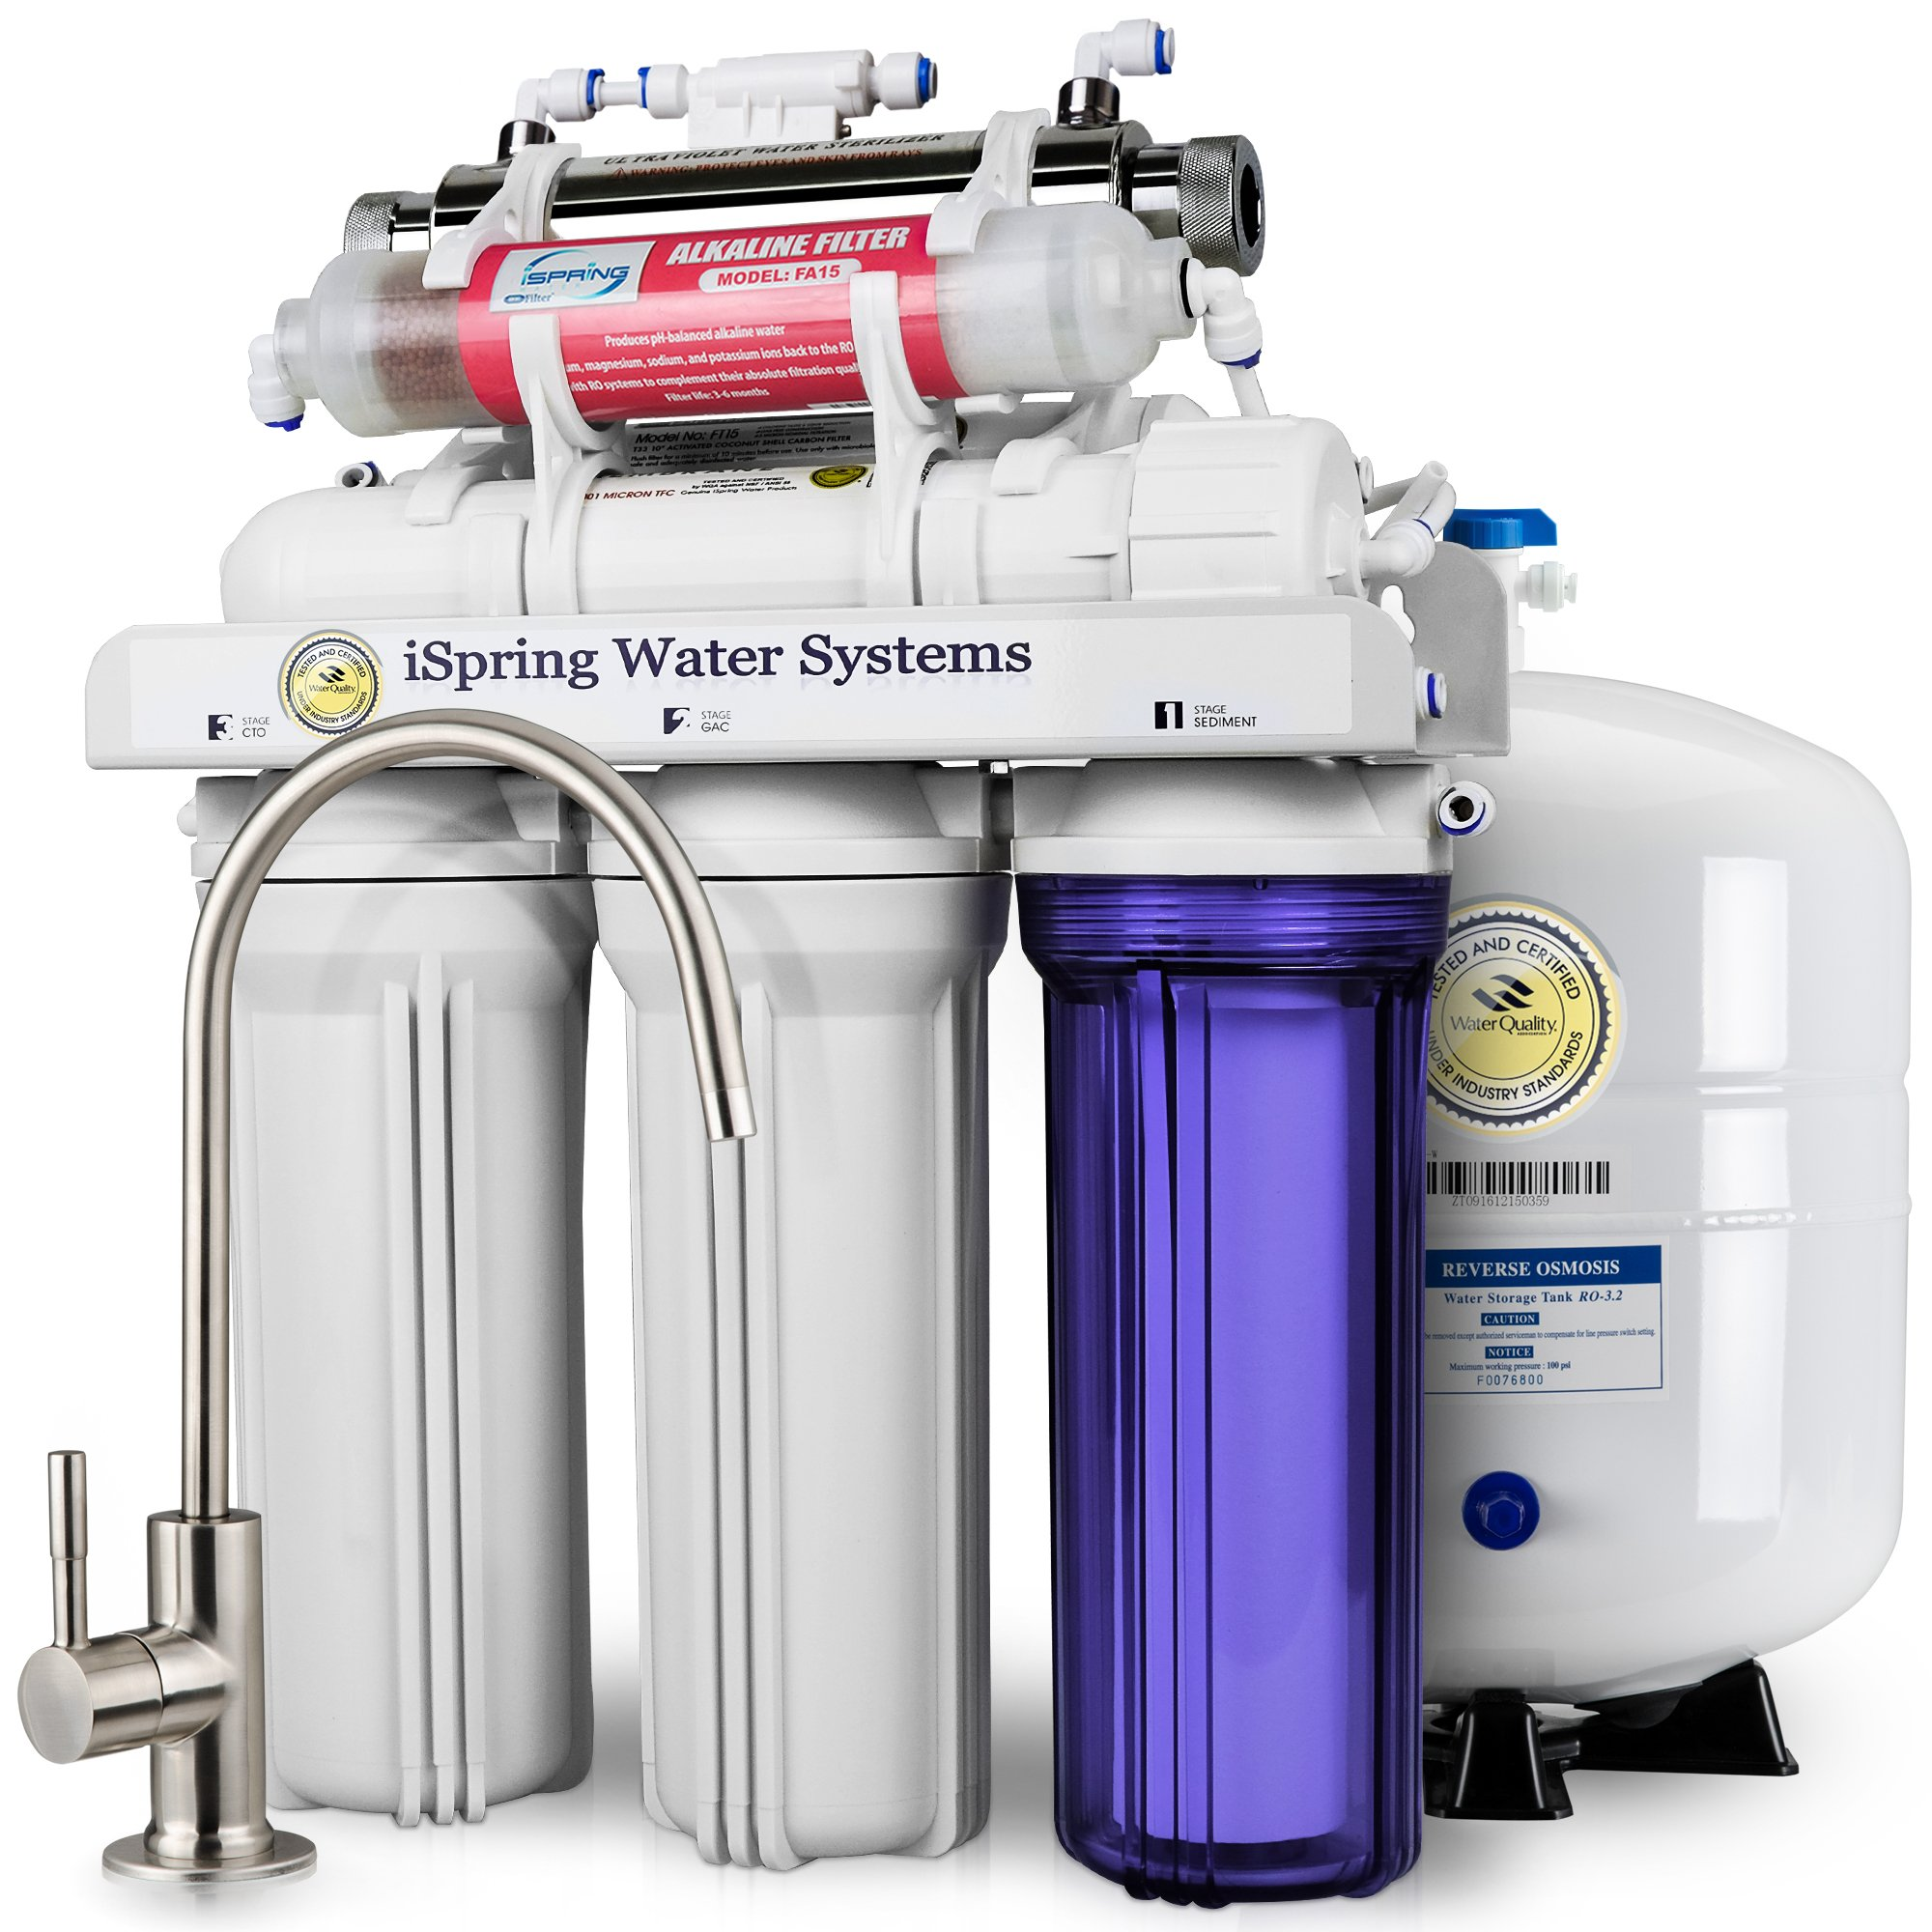 iSpring RCC7AK-UV 7-Stage Under-Sink Reverse Osmosis Drinking Water Filtration System with Alkaline Remineralization Filter and UV Sterilizer - 75 GPD